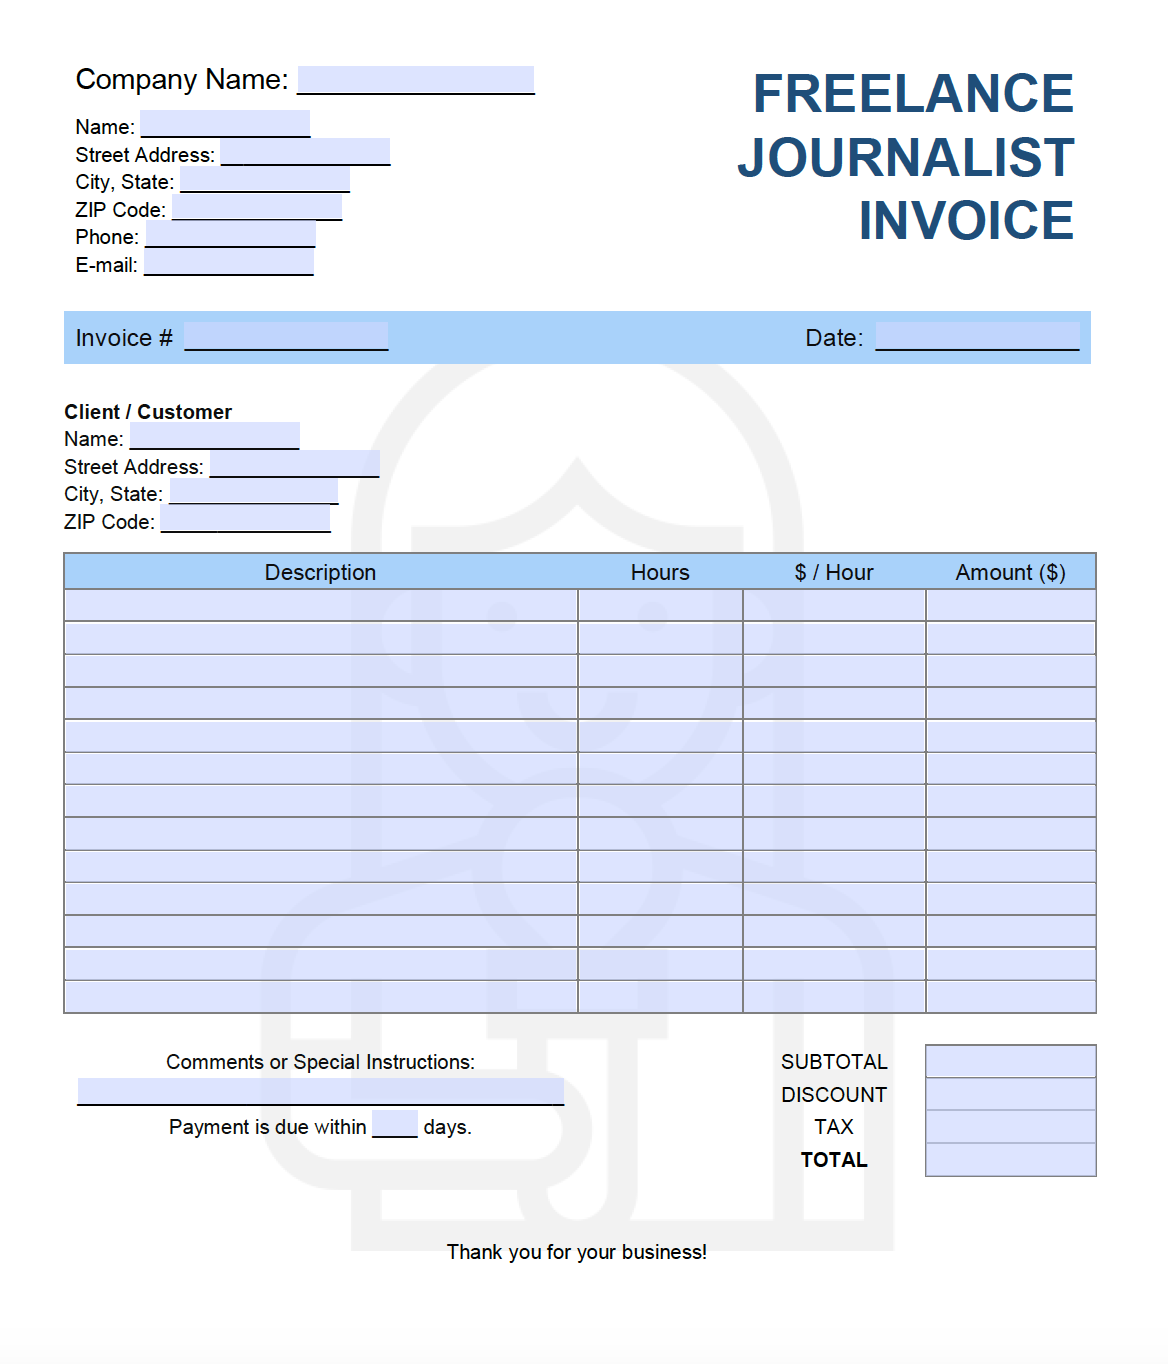 Free Freelance Journalist Invoice Template Pdf Word Excel